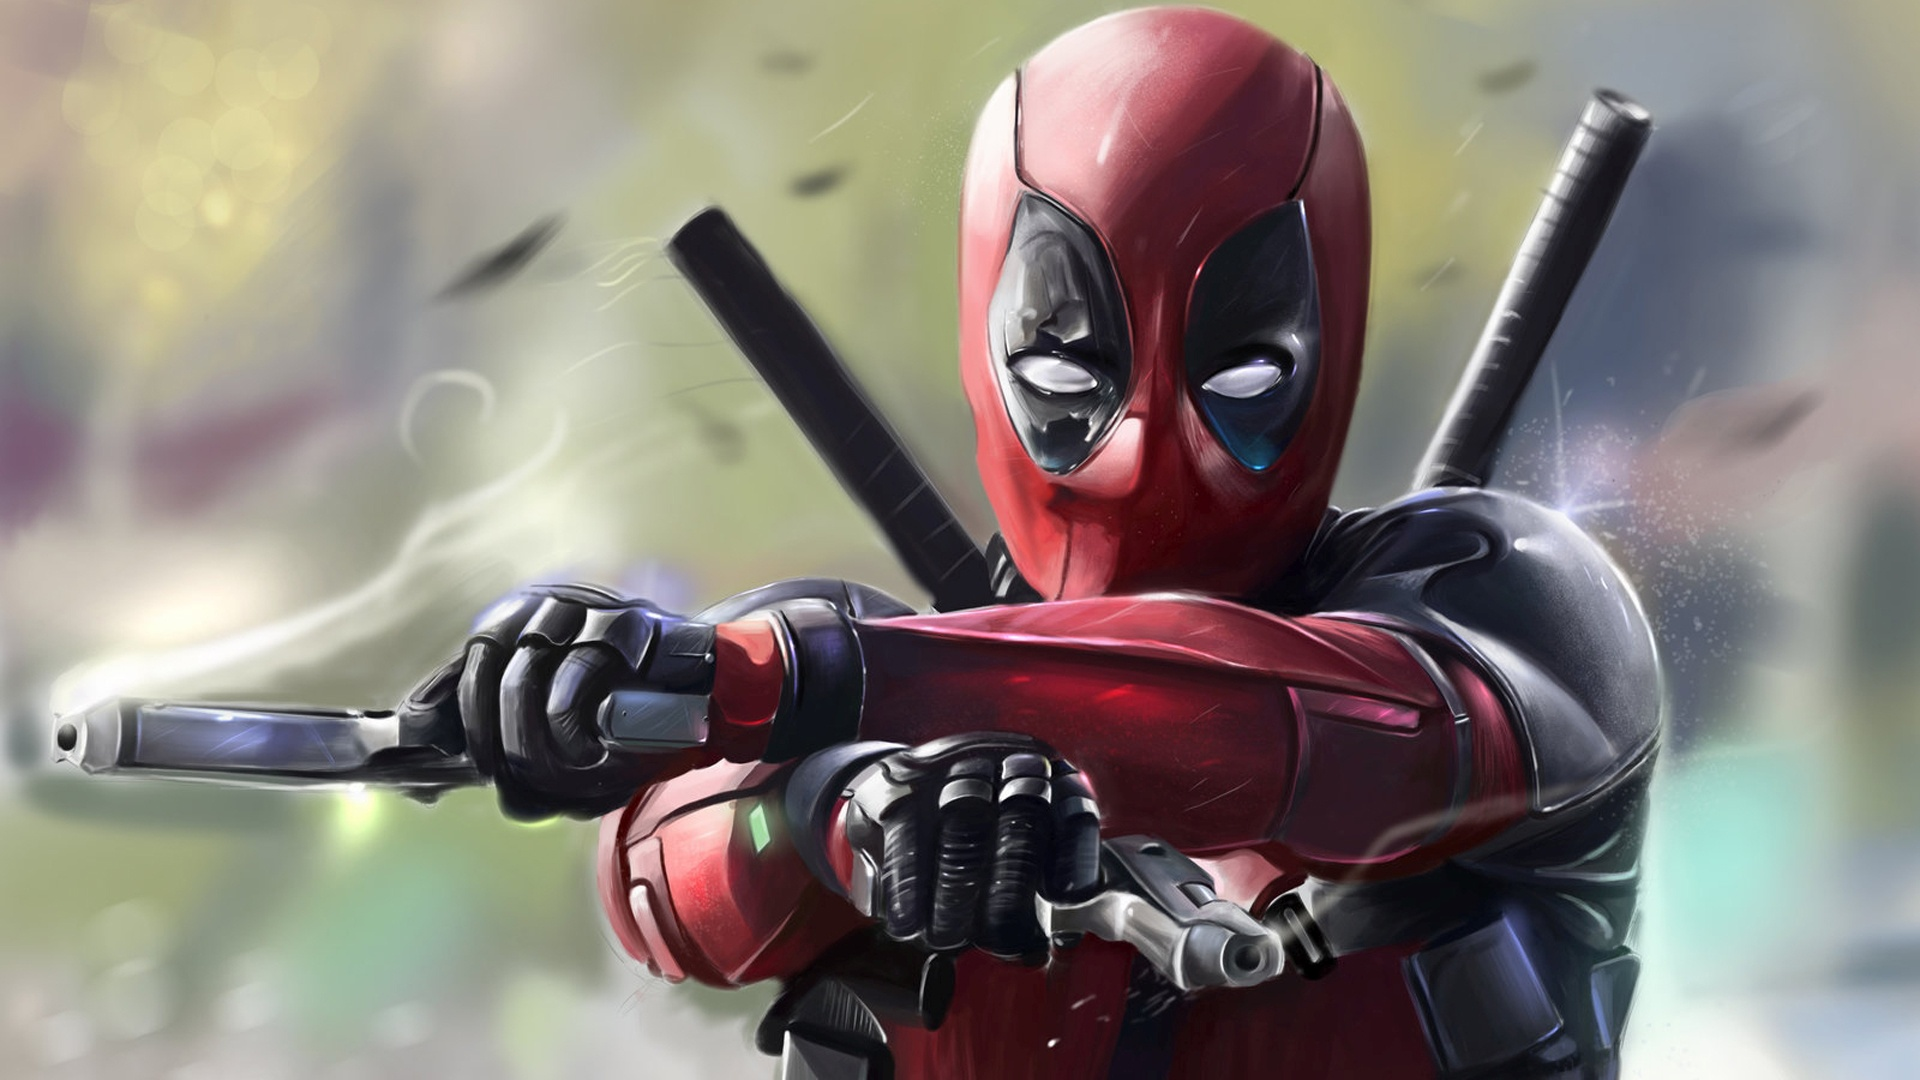 Deadpool 2016 Art Hd Movies 4k Wallpapers Images Backgrounds